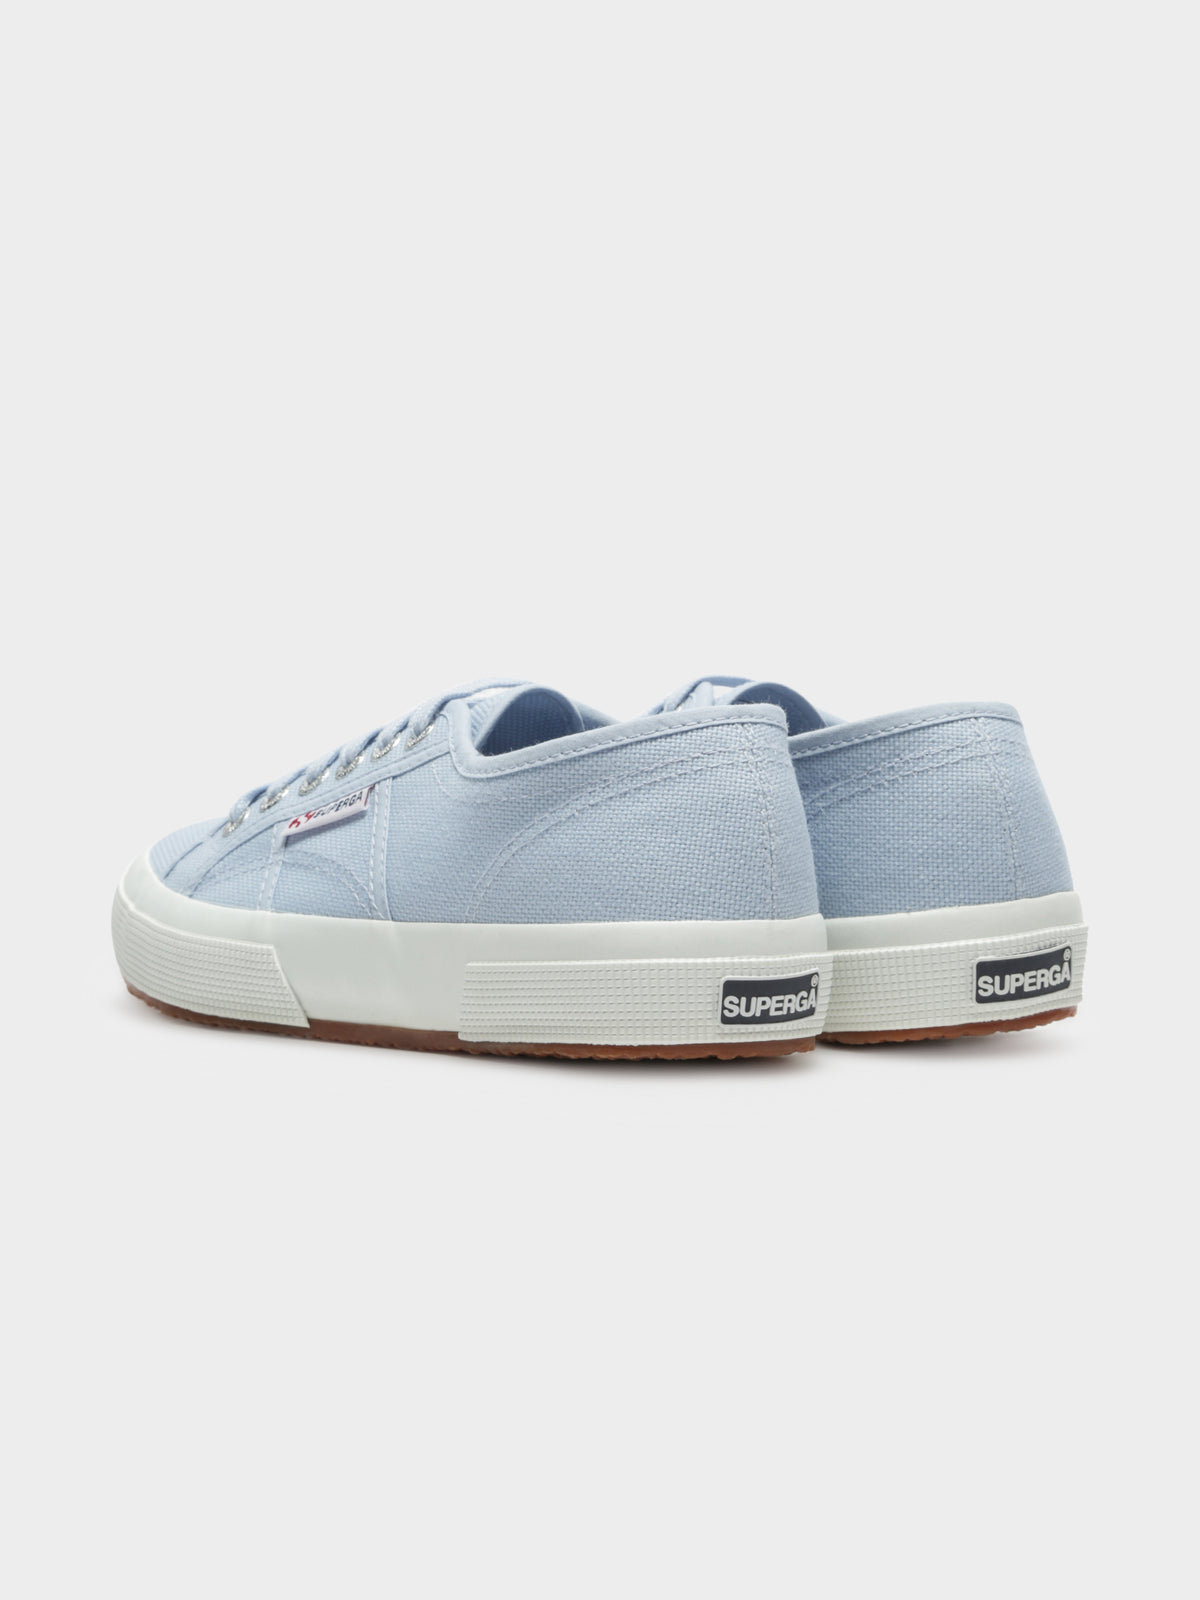 Womens 2750 Cotu Classic Sneakers in Sky Blue